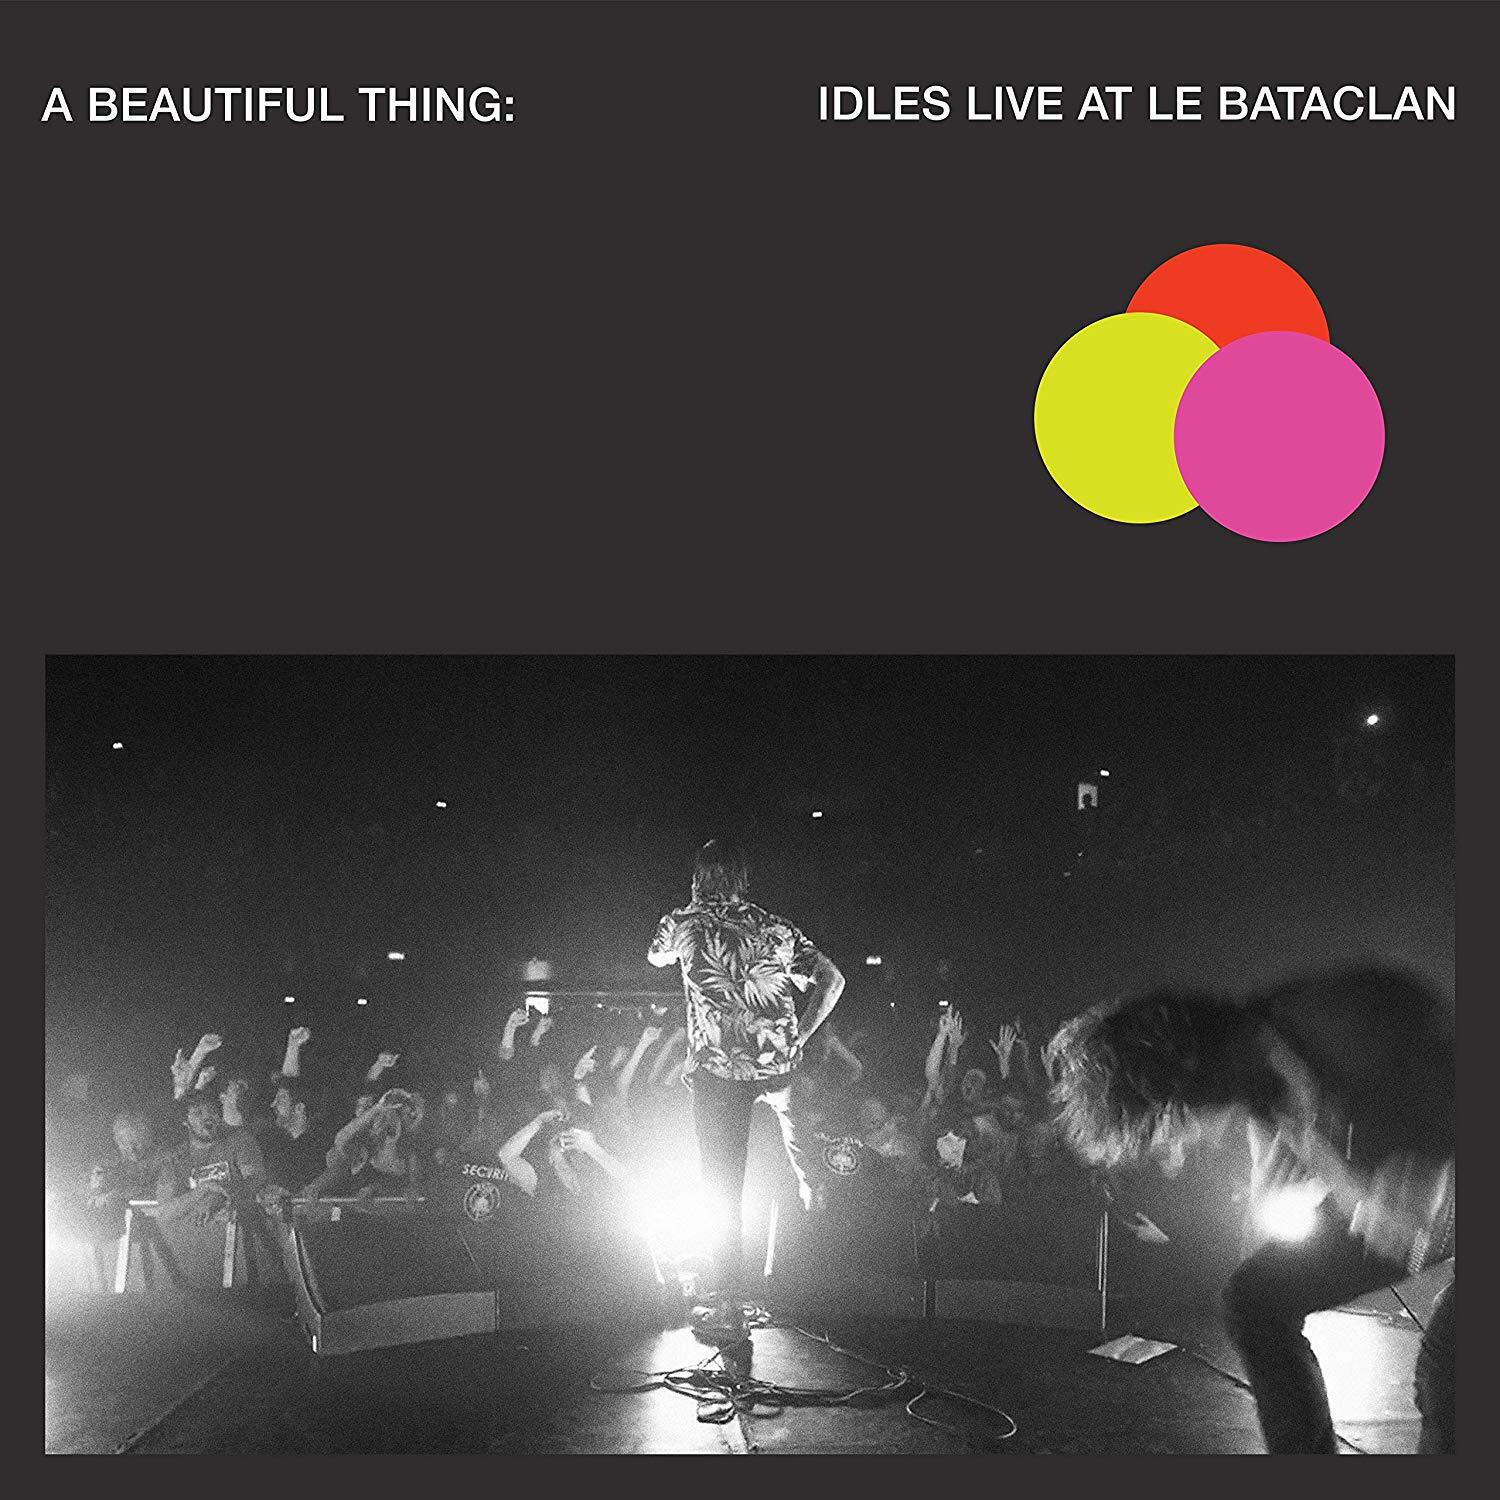 IDLES - A Beautiful Thing: Idles Live at le Bataclan (LTD. Neon Clear Pink Color 2LP)